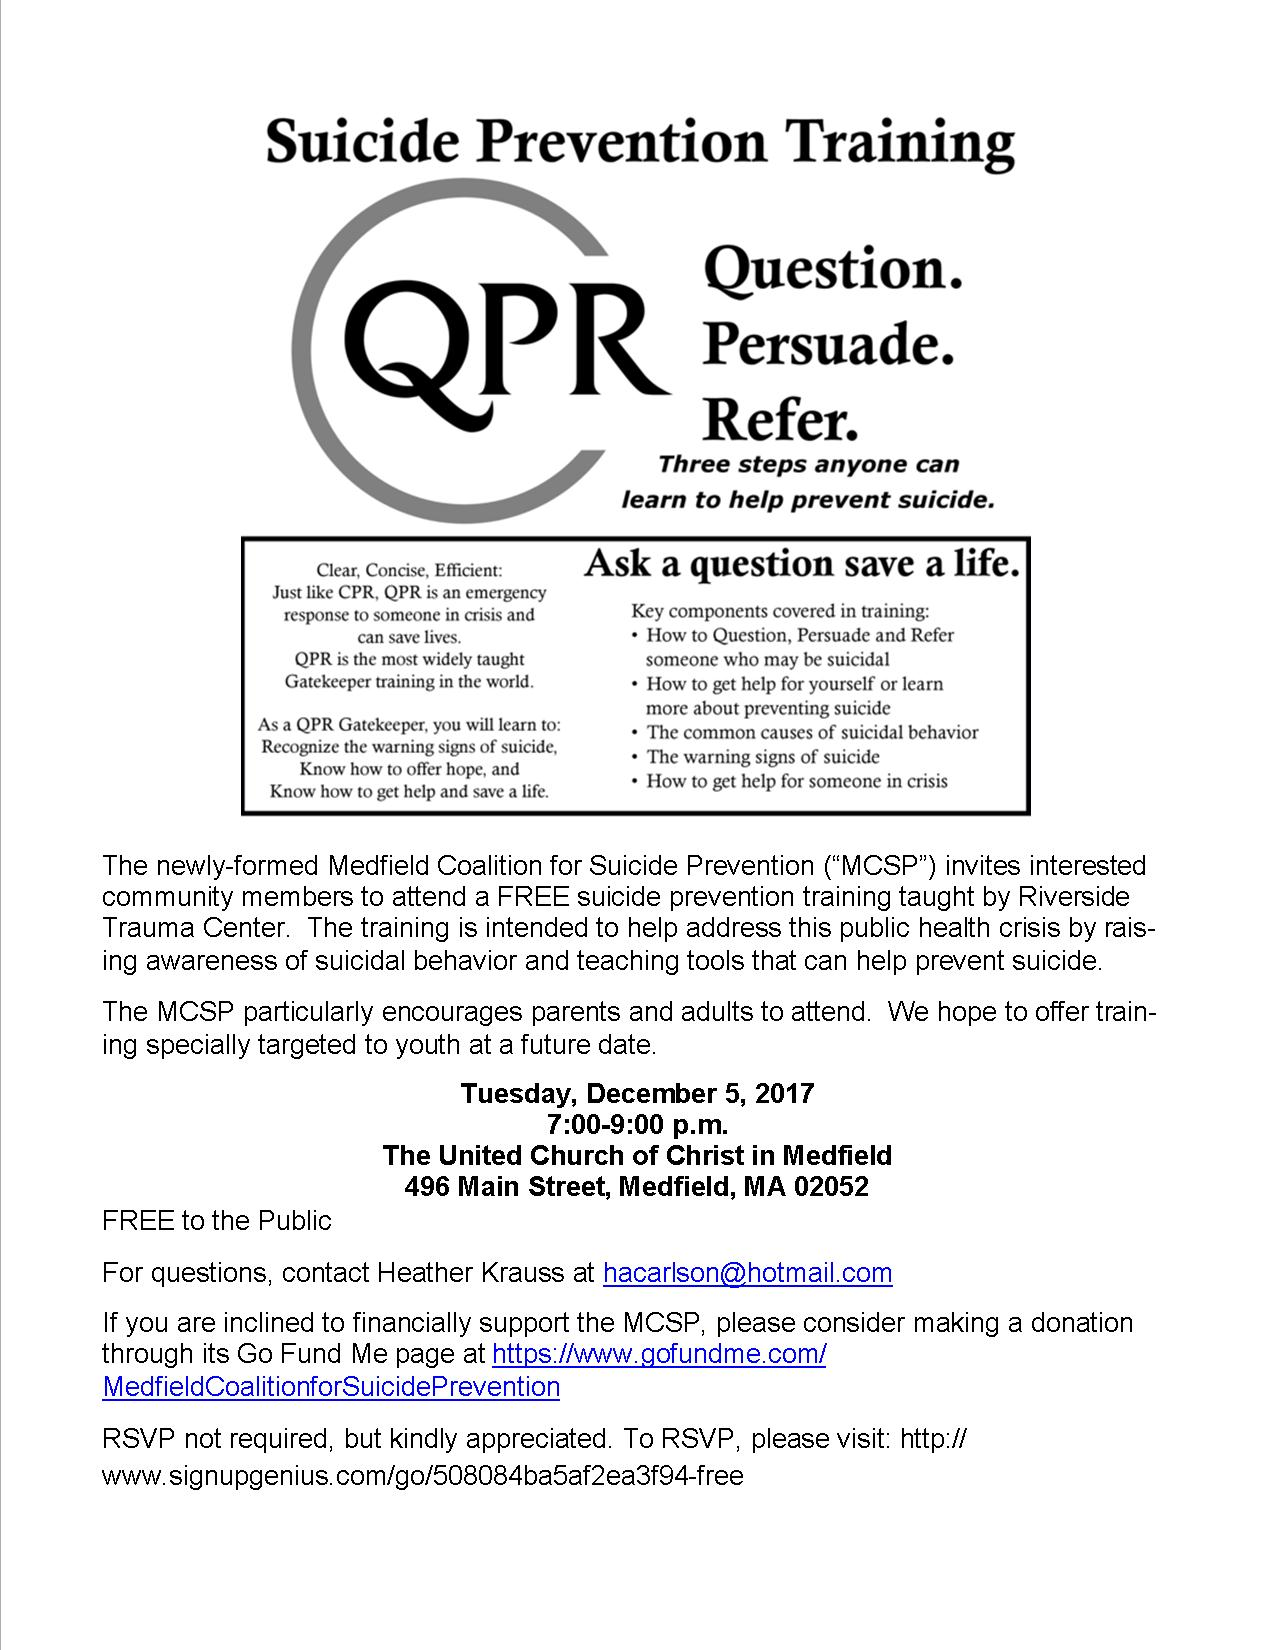 """The newly-formed Medfield Coalition for Suicide Prevention (""""MCSP"""") invites interested community members to attend a FREE suicide prevention training taught by Riverside Trauma Center. The training is intended to help address this public health crisis by rais-ing awareness of suicidal behavior and teaching tools that can help prevent suicide. The MCSP particularly encourages parents and adults to attend. We hope to offer train-ing specially targeted to youth at a future date. Tuesday, December 5, 2017 7:00-9:00 p.m. The United Church of Christ in Medfield 496 Main Street, Medfield, MA 02052 FREE to the Public For questions, contact Heather Krauss at hacarlson@hotmail.com If you are inclined to financially support the MCSP, please consider making a donation through its Go Fund Me page at https://www.gofundme.com/MedfieldCoalitionforSuicidePrevention RSVP not required, but kindly appreciated. To RSVP, please visit: http://www.signupgenius.com/go/508084ba5af2ea3f94-free"""